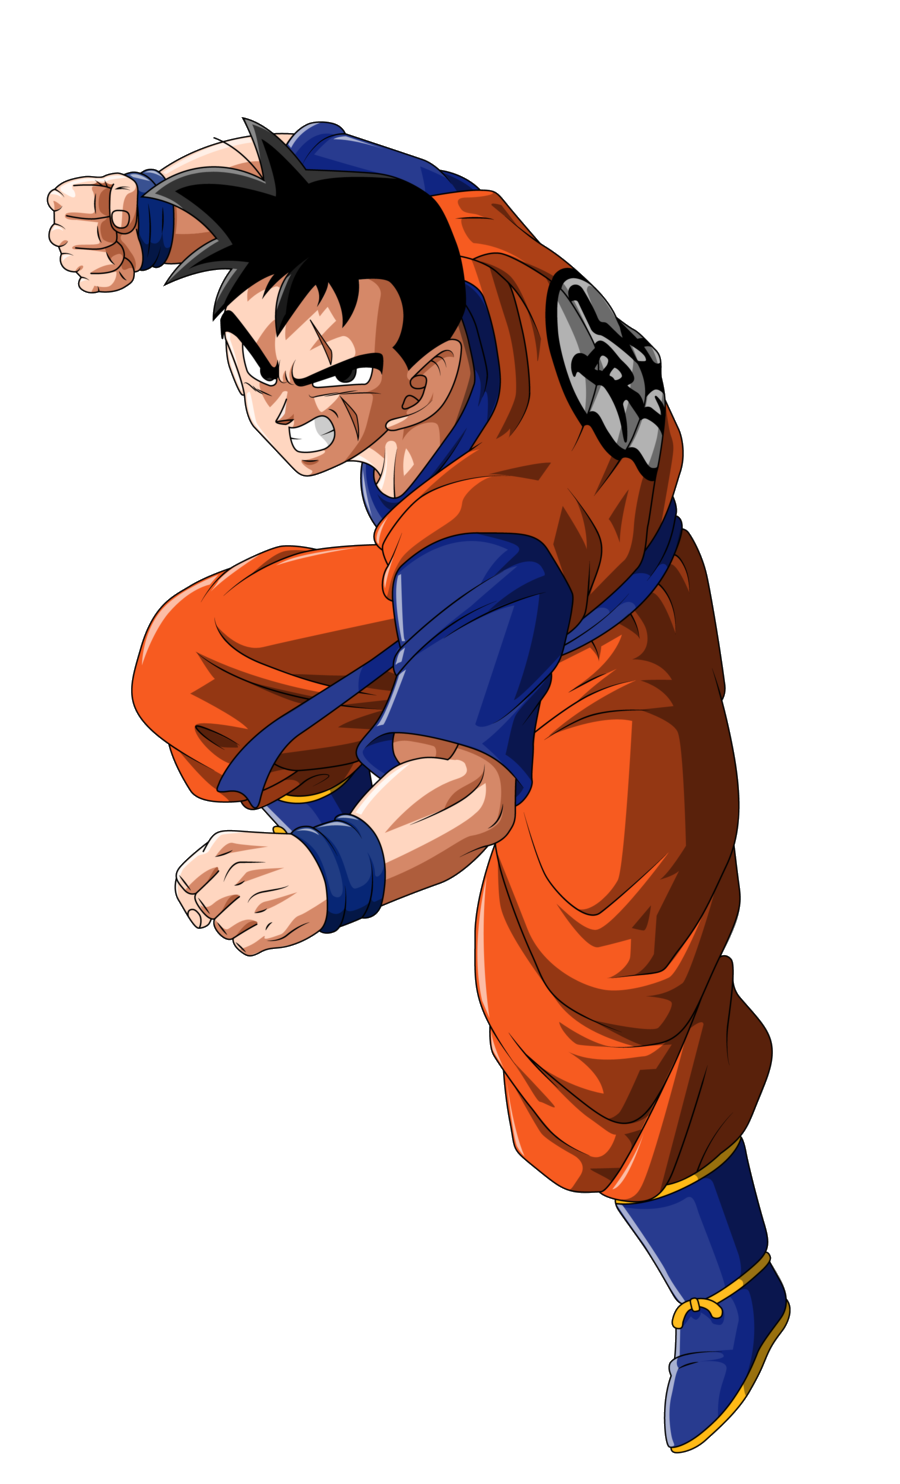 Gohan futuro alternativo dragon ball wiki - Dragon ball z gohan images ...